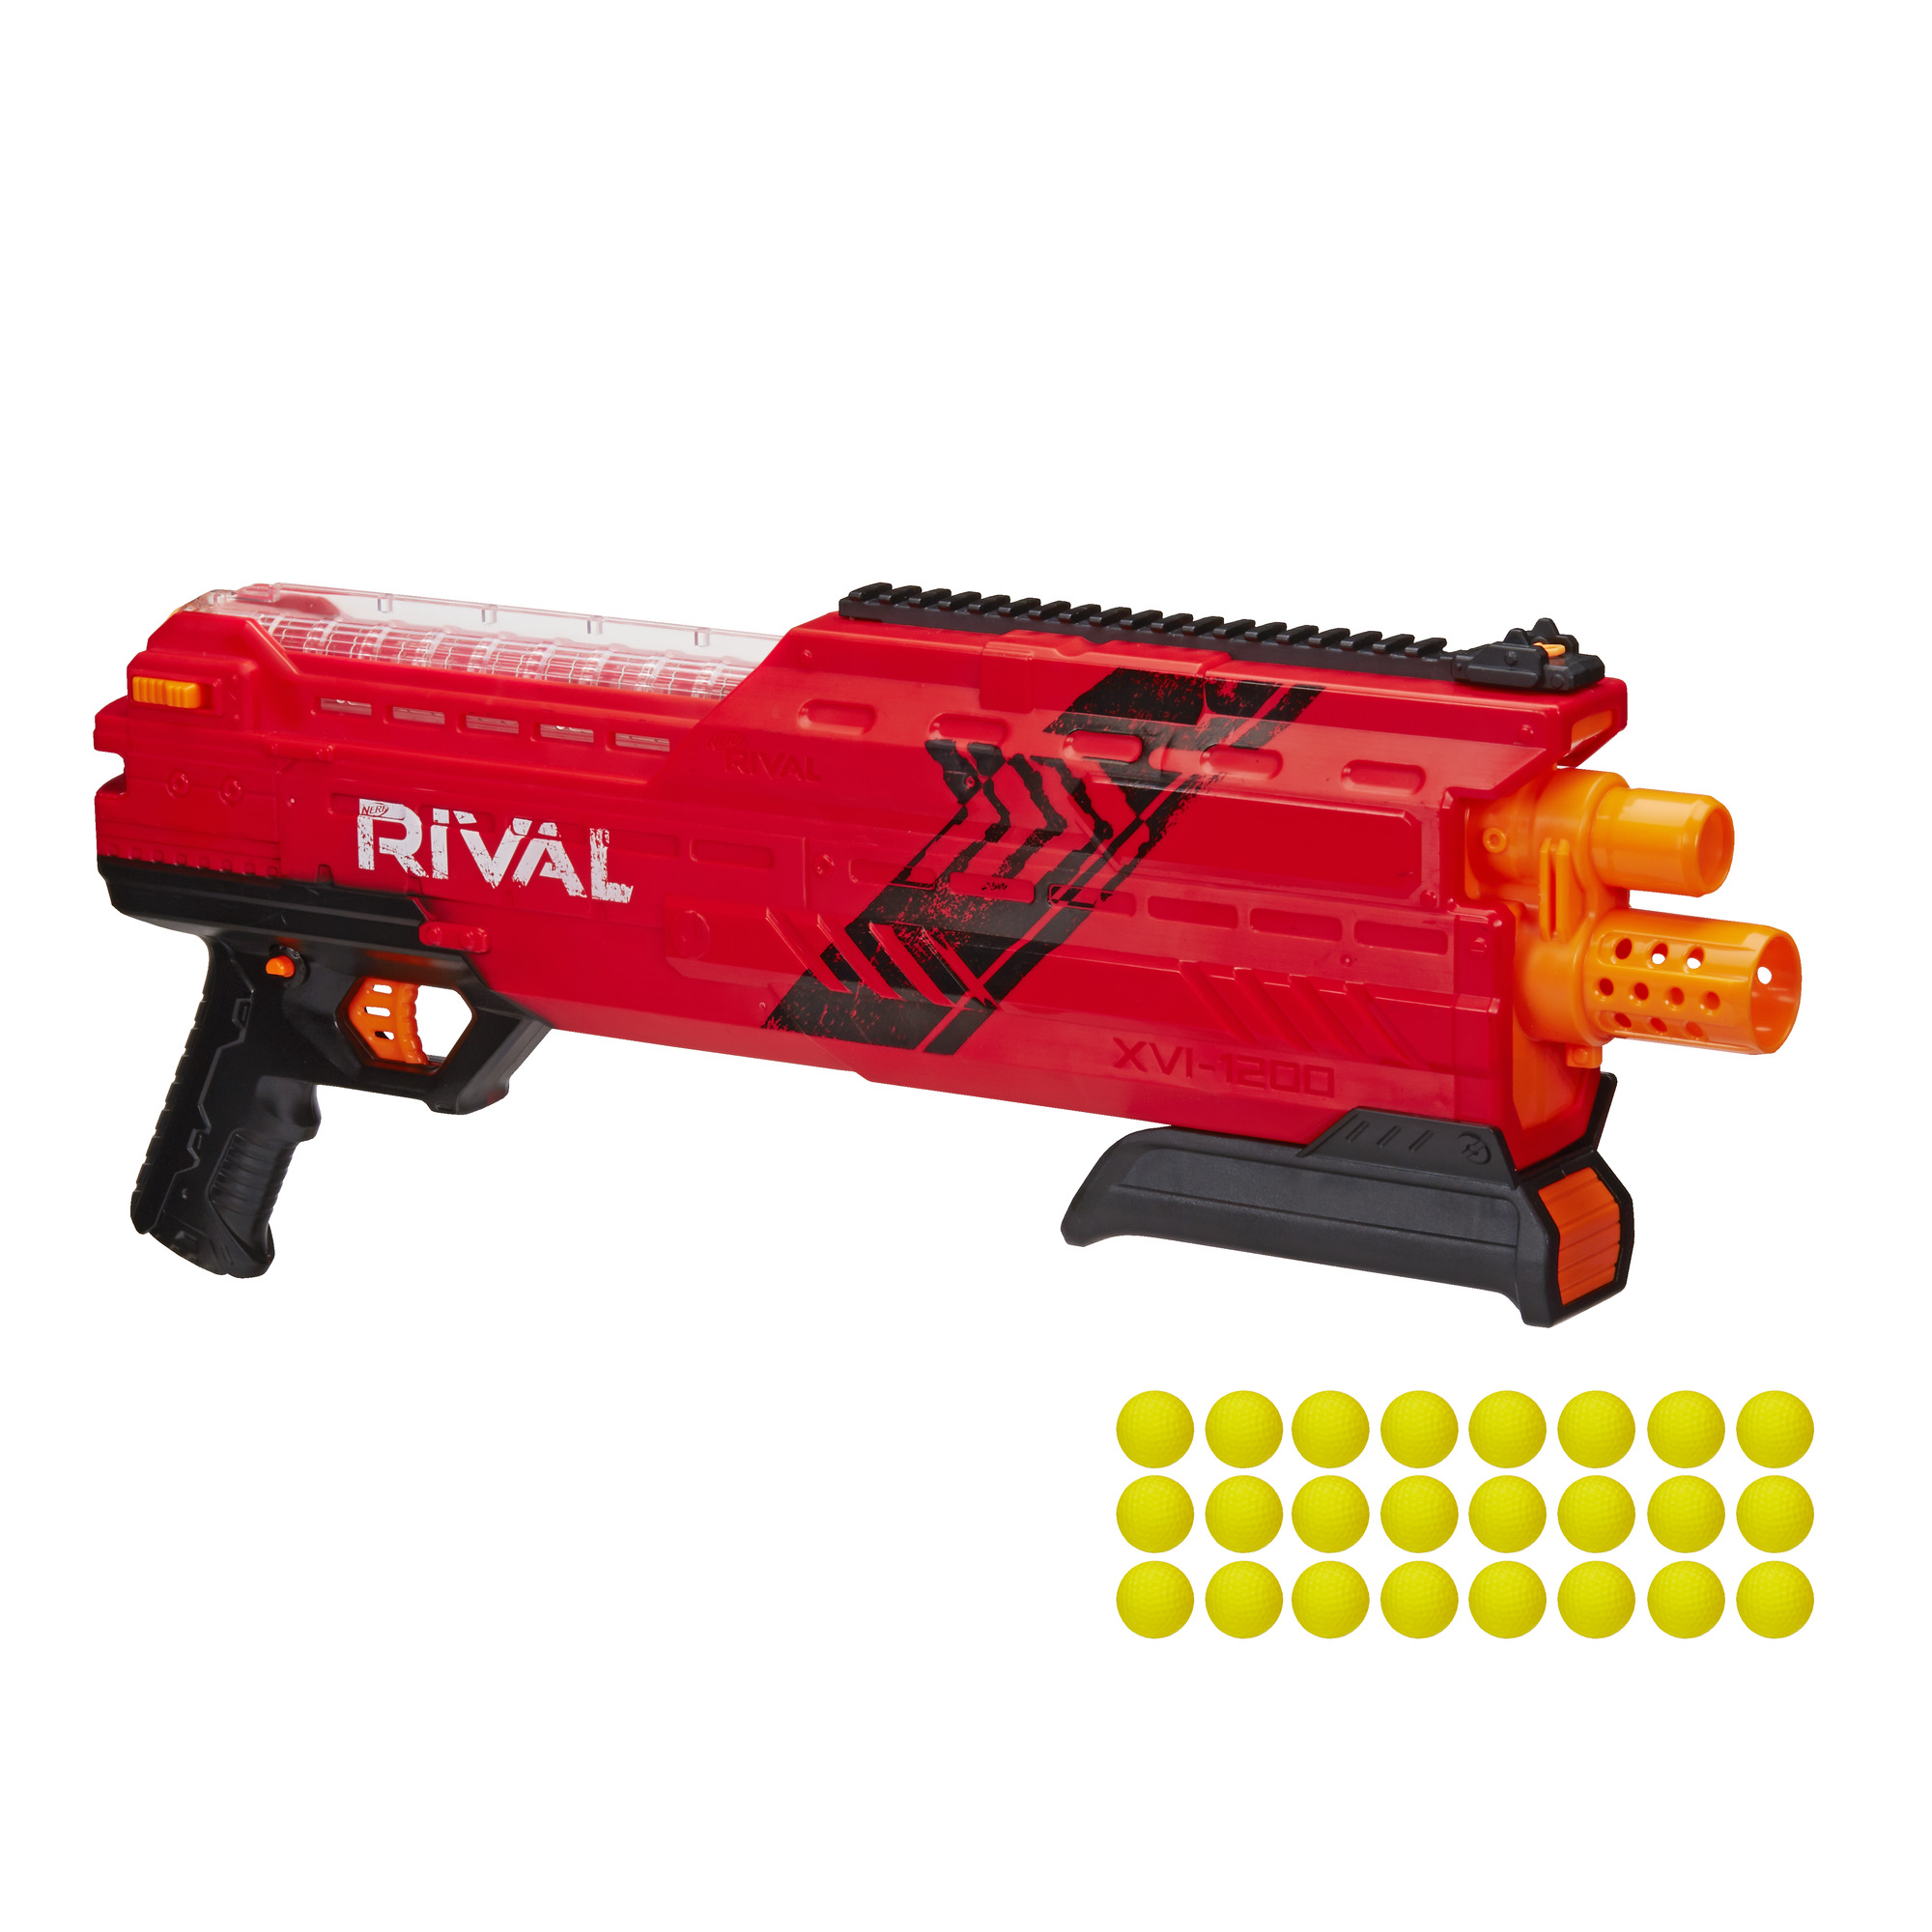 Nerf Rival Atlas XVI 1200 Blaster Red Toy Weapons & Gad s